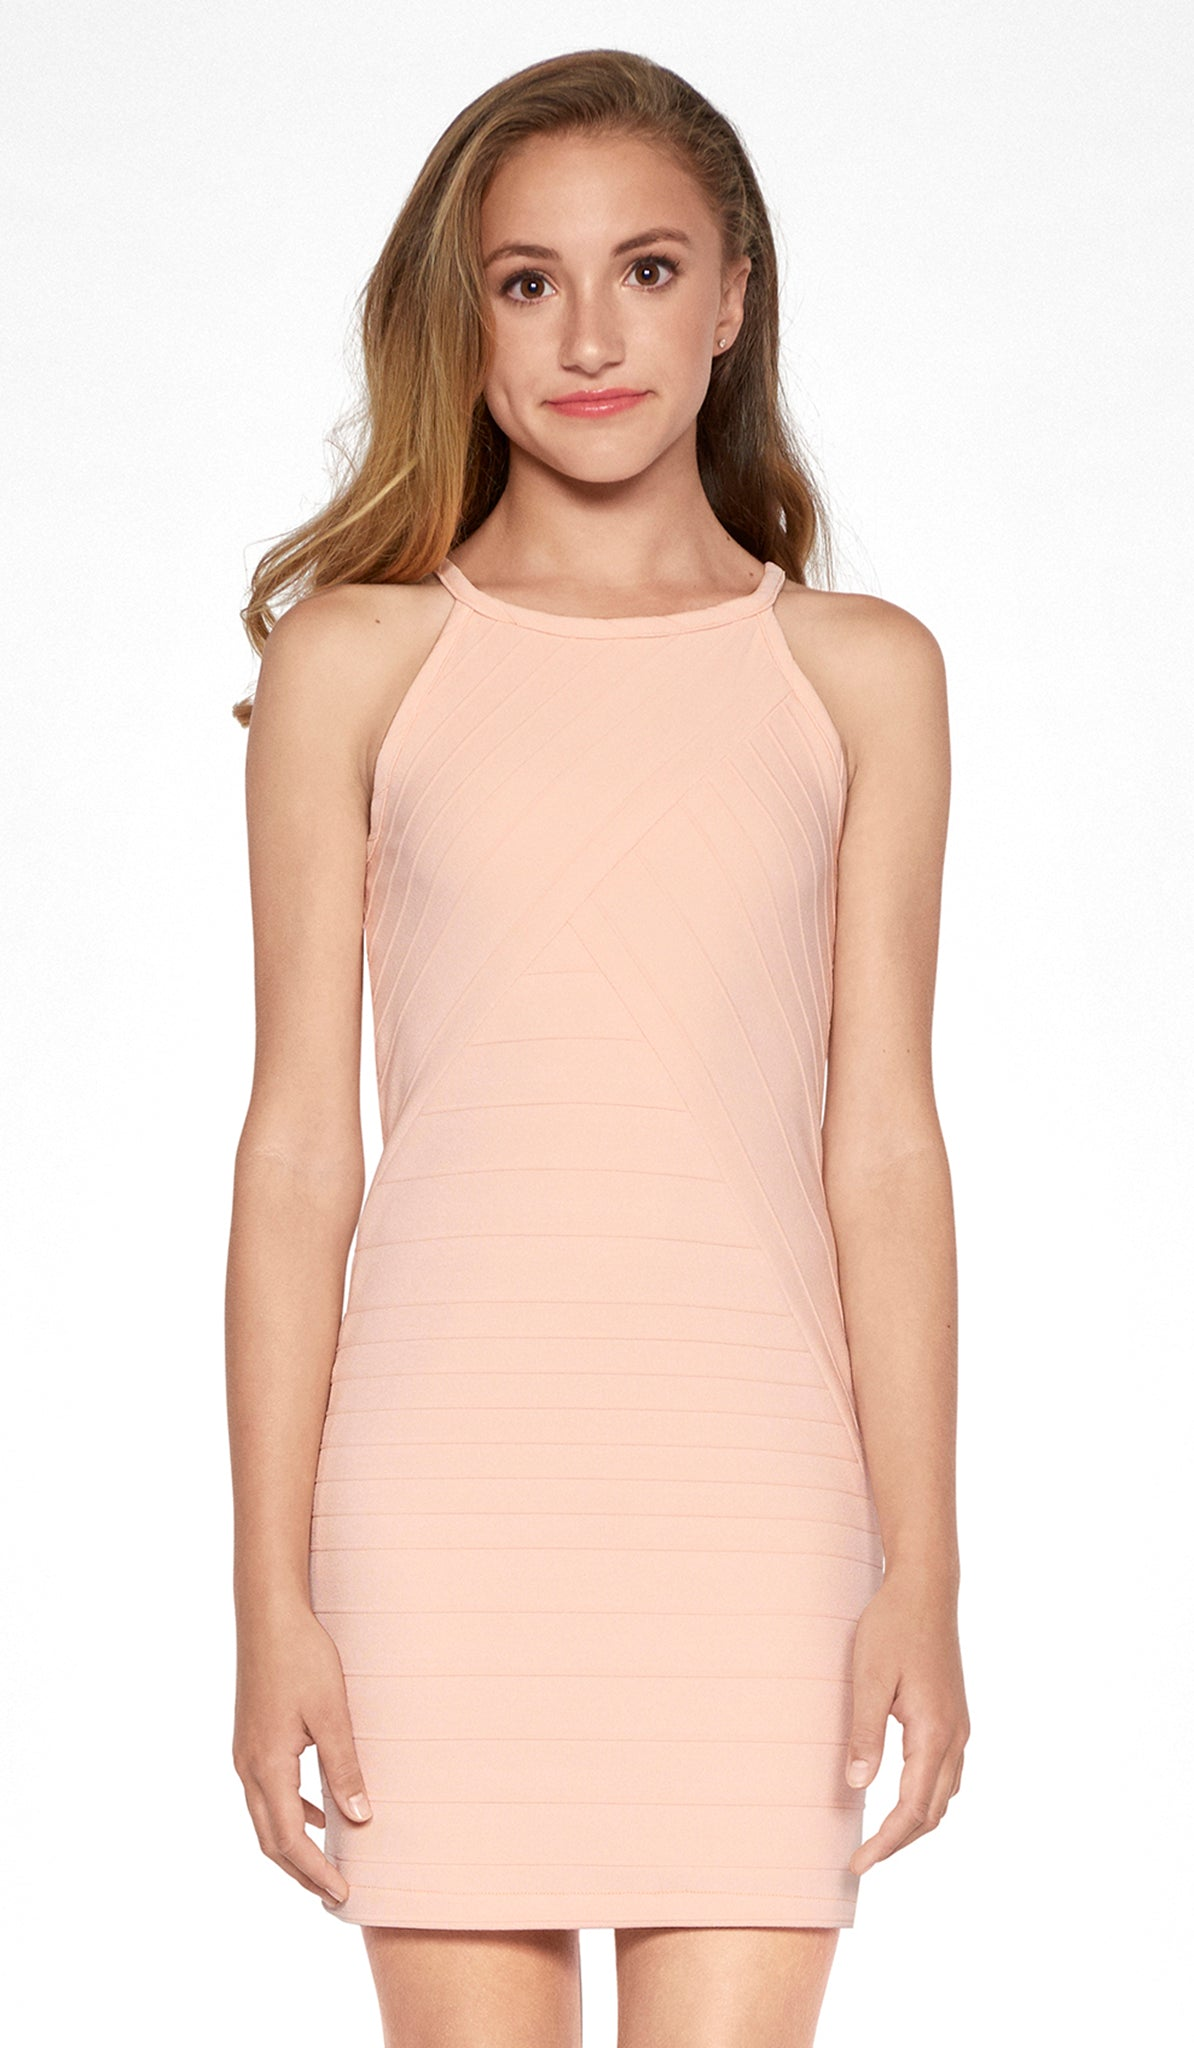 Blush varigated stripe textured stretch knit body con dress fully lined tween Sally Miller Mandy Dress